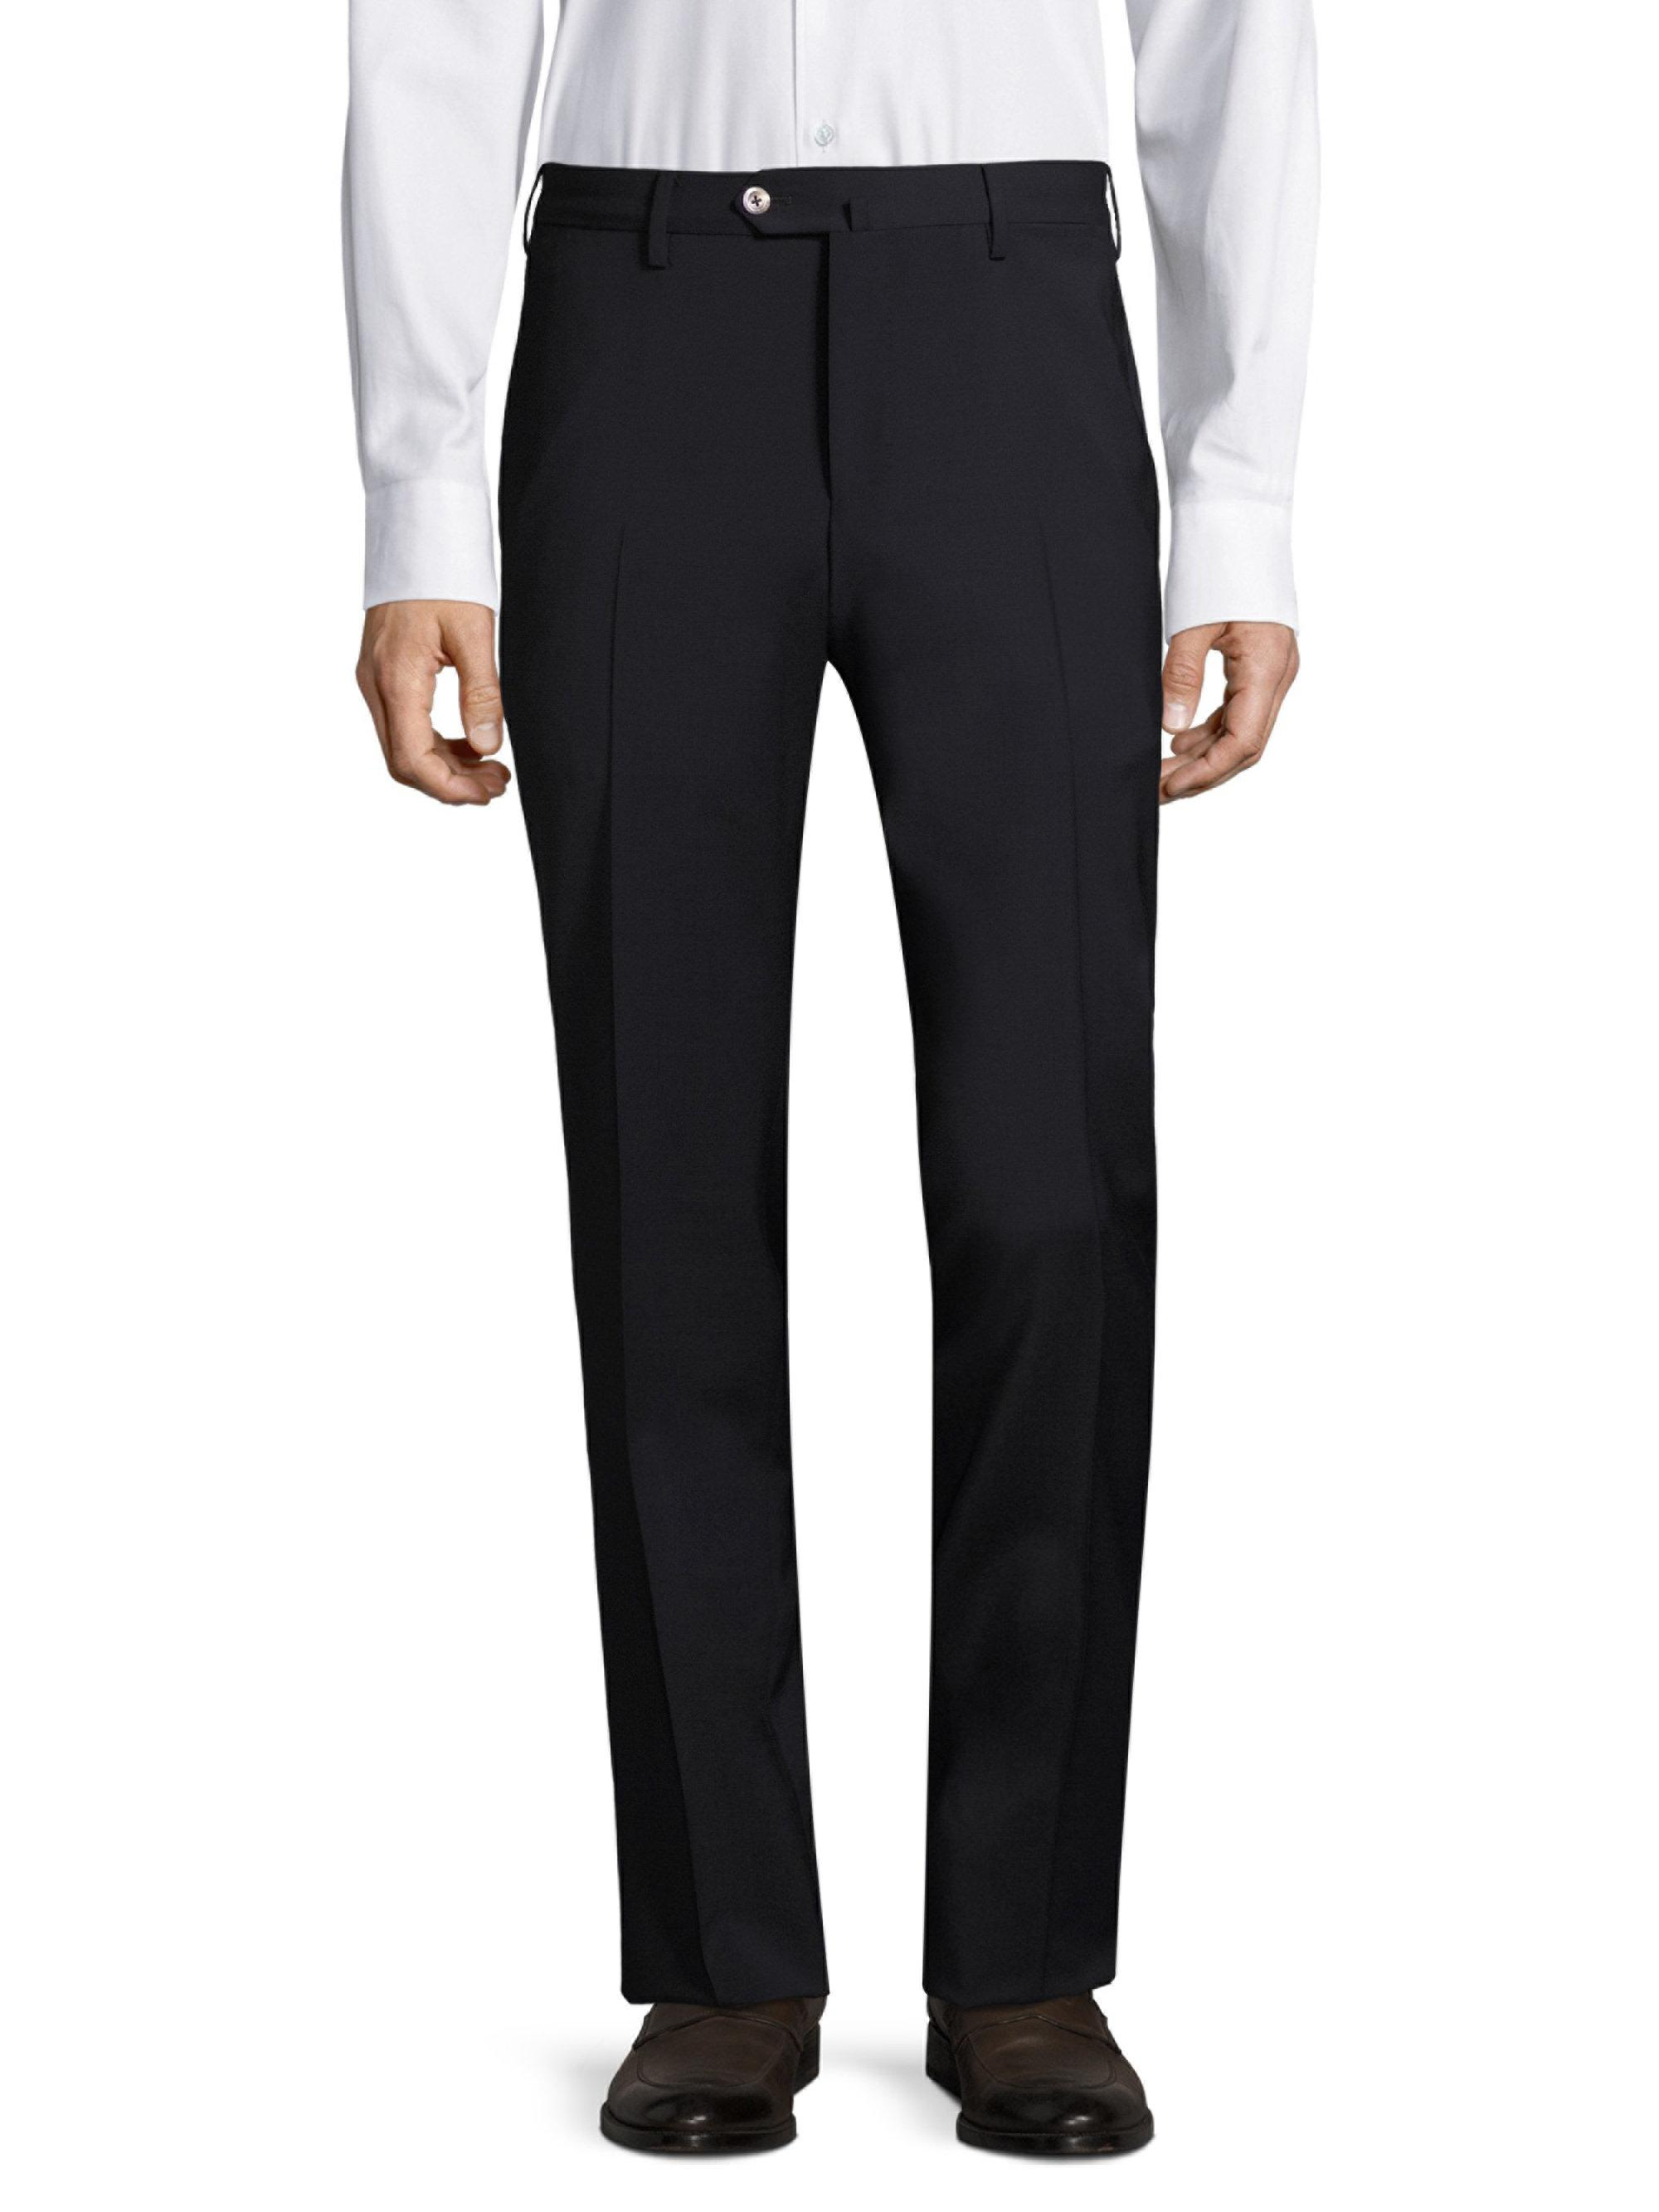 stretch business trousers - Blue PT01 QH7rgit